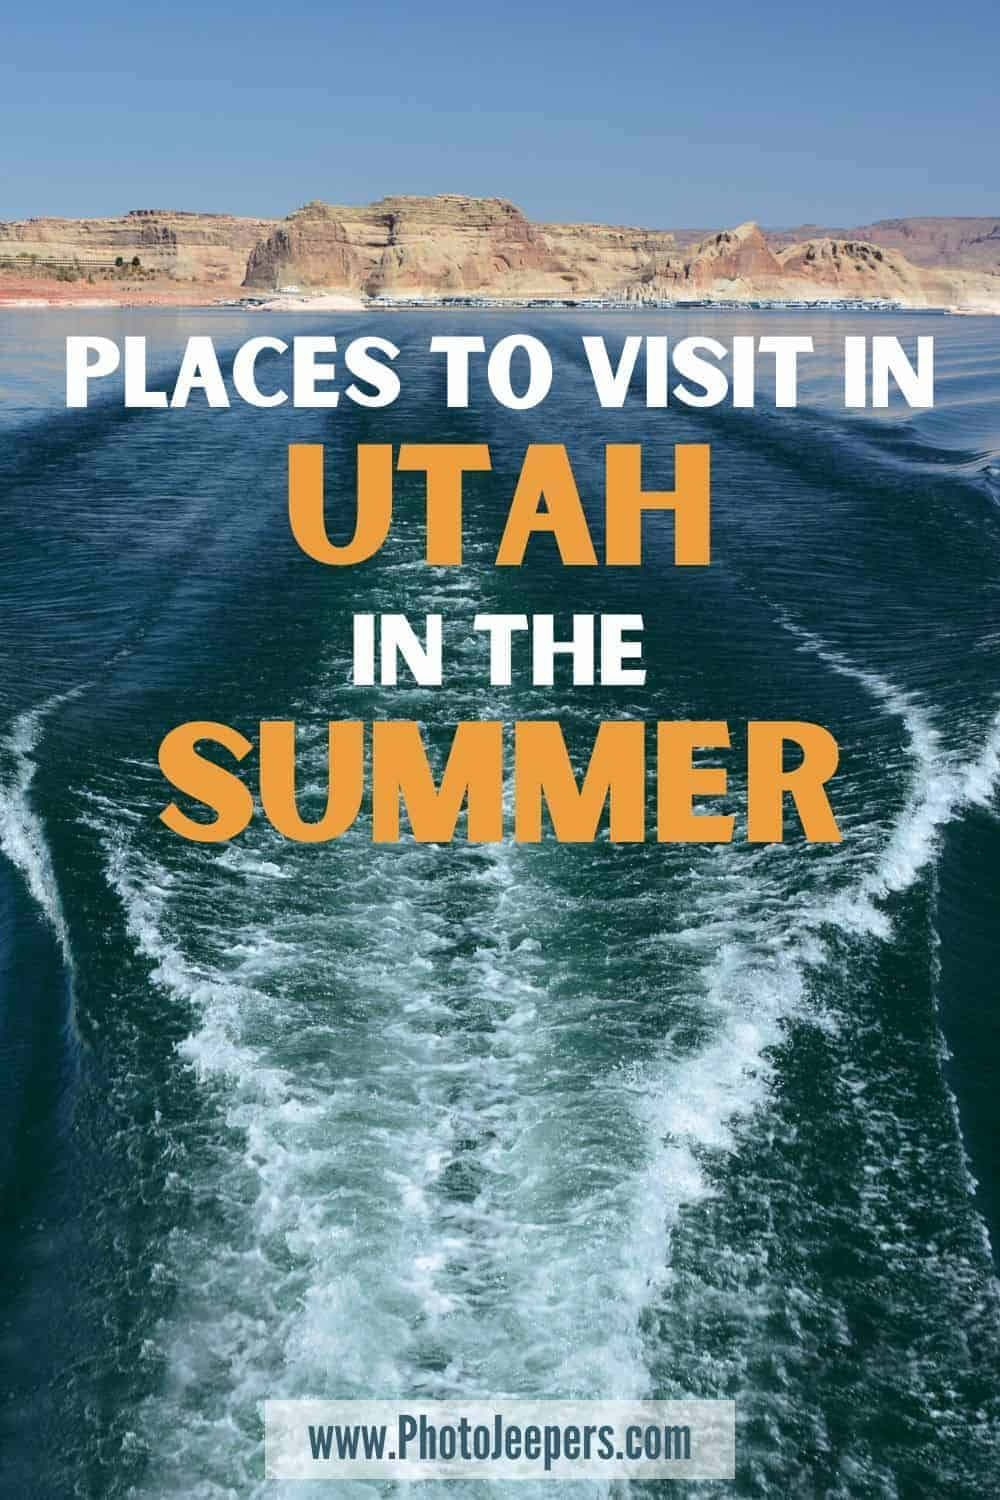 Places to Visit in Utah in the Summer